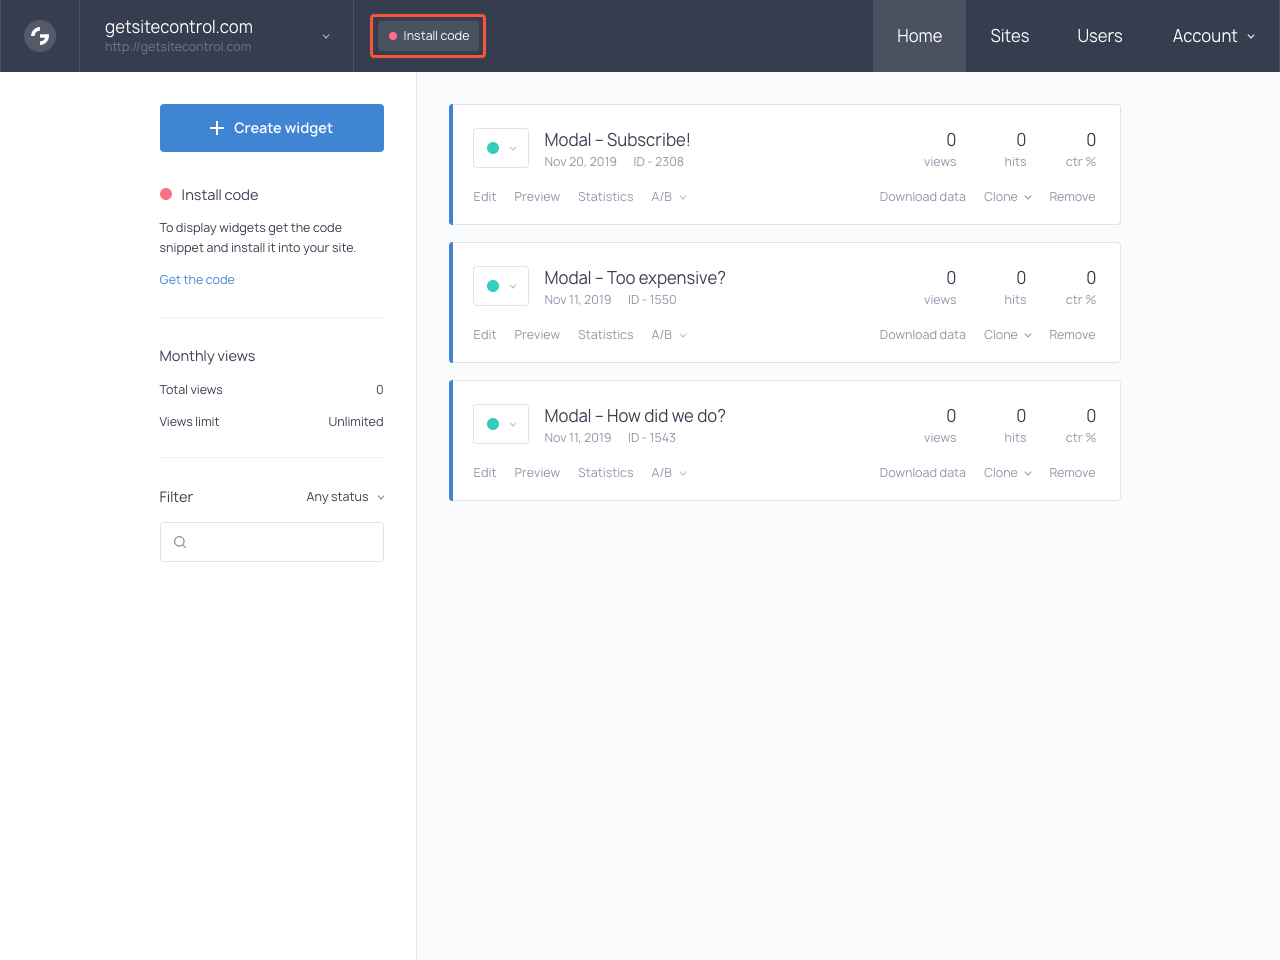 Getsitecontrol dashboard with the highlighted Install code link